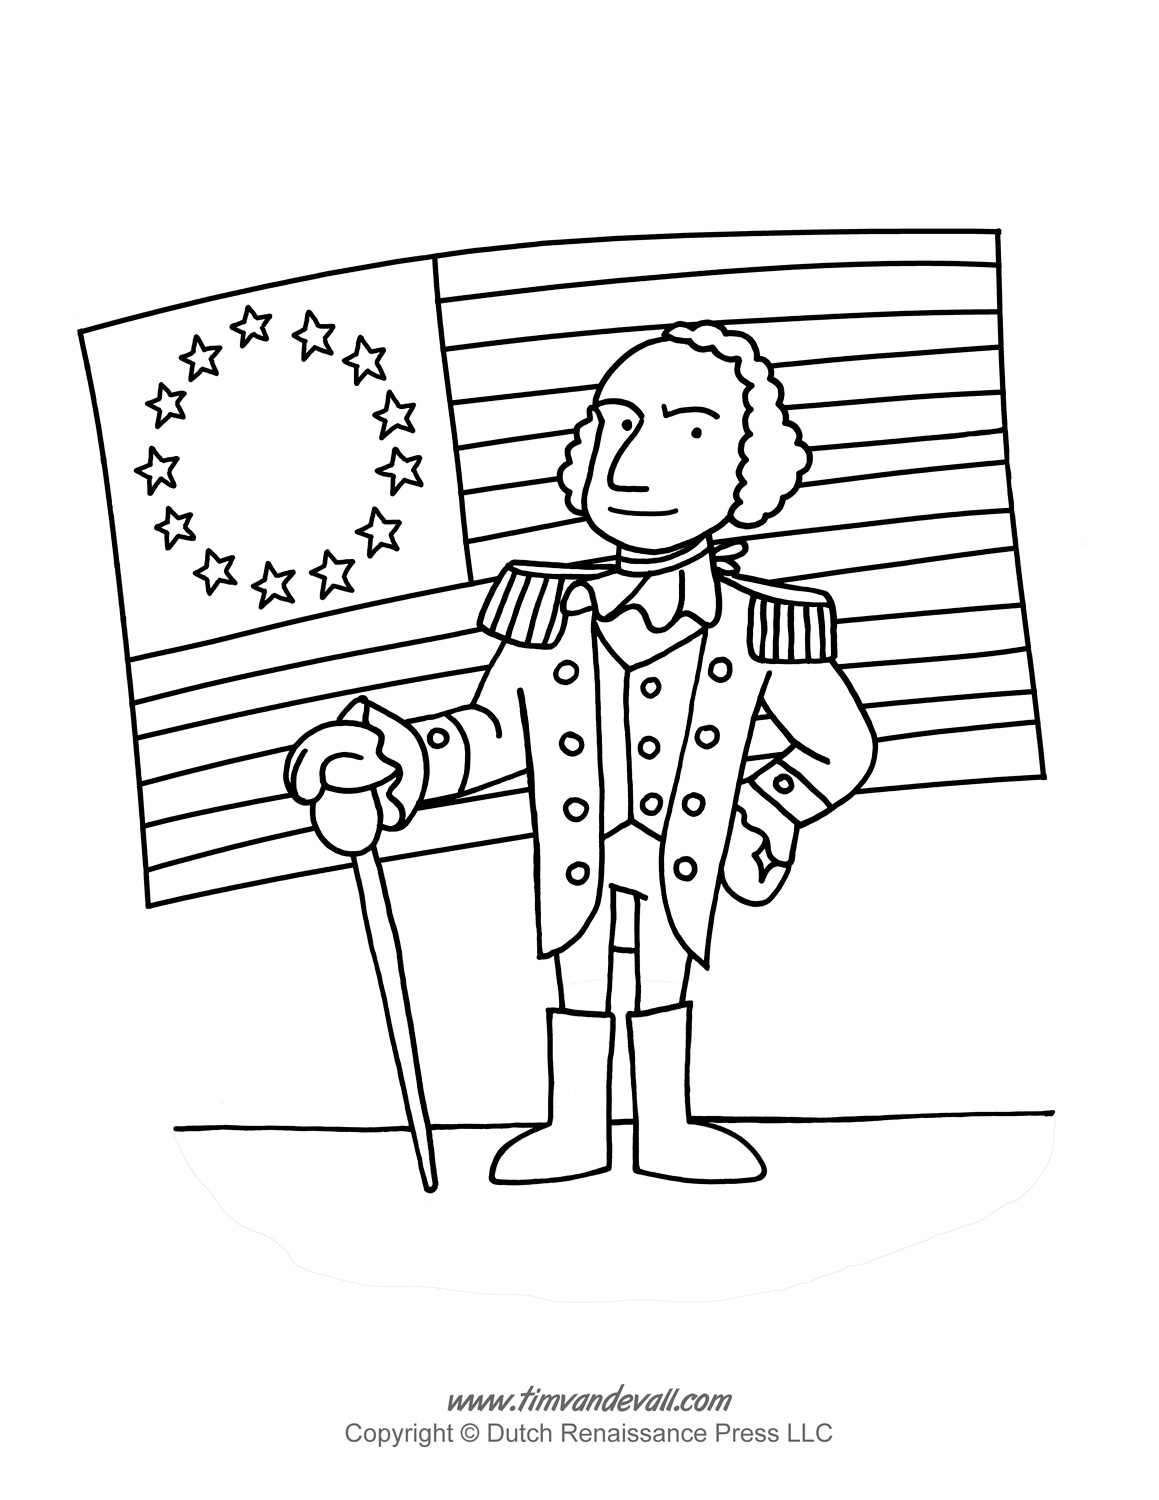 George Washington Coloring Page Tims Printables